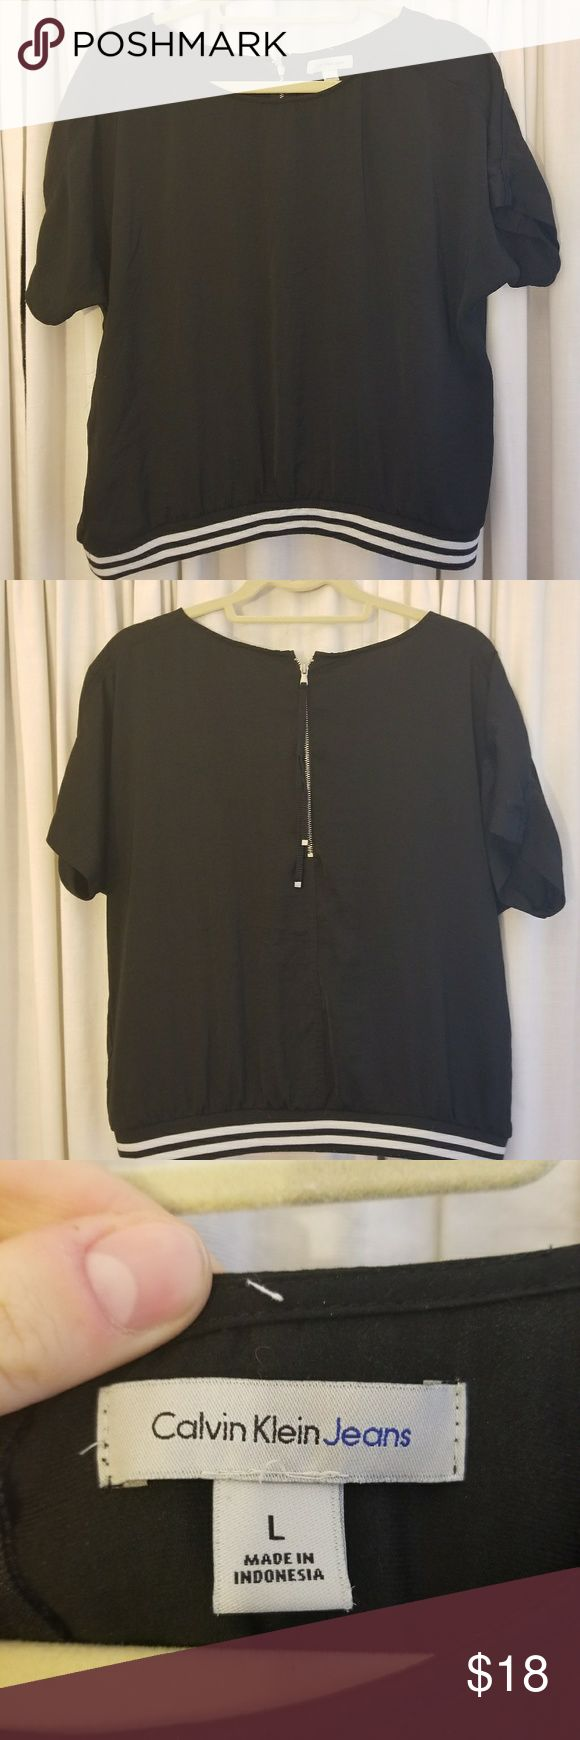 Calvin Klein athletic-style shirt Black, boxy-fit, silky athletic top with white and black banded bottom. Back zip closure. Purchased at Macy's in August 2017. Worn twice. Calvin Klein Jeans Tops Tees - Short Sleeve